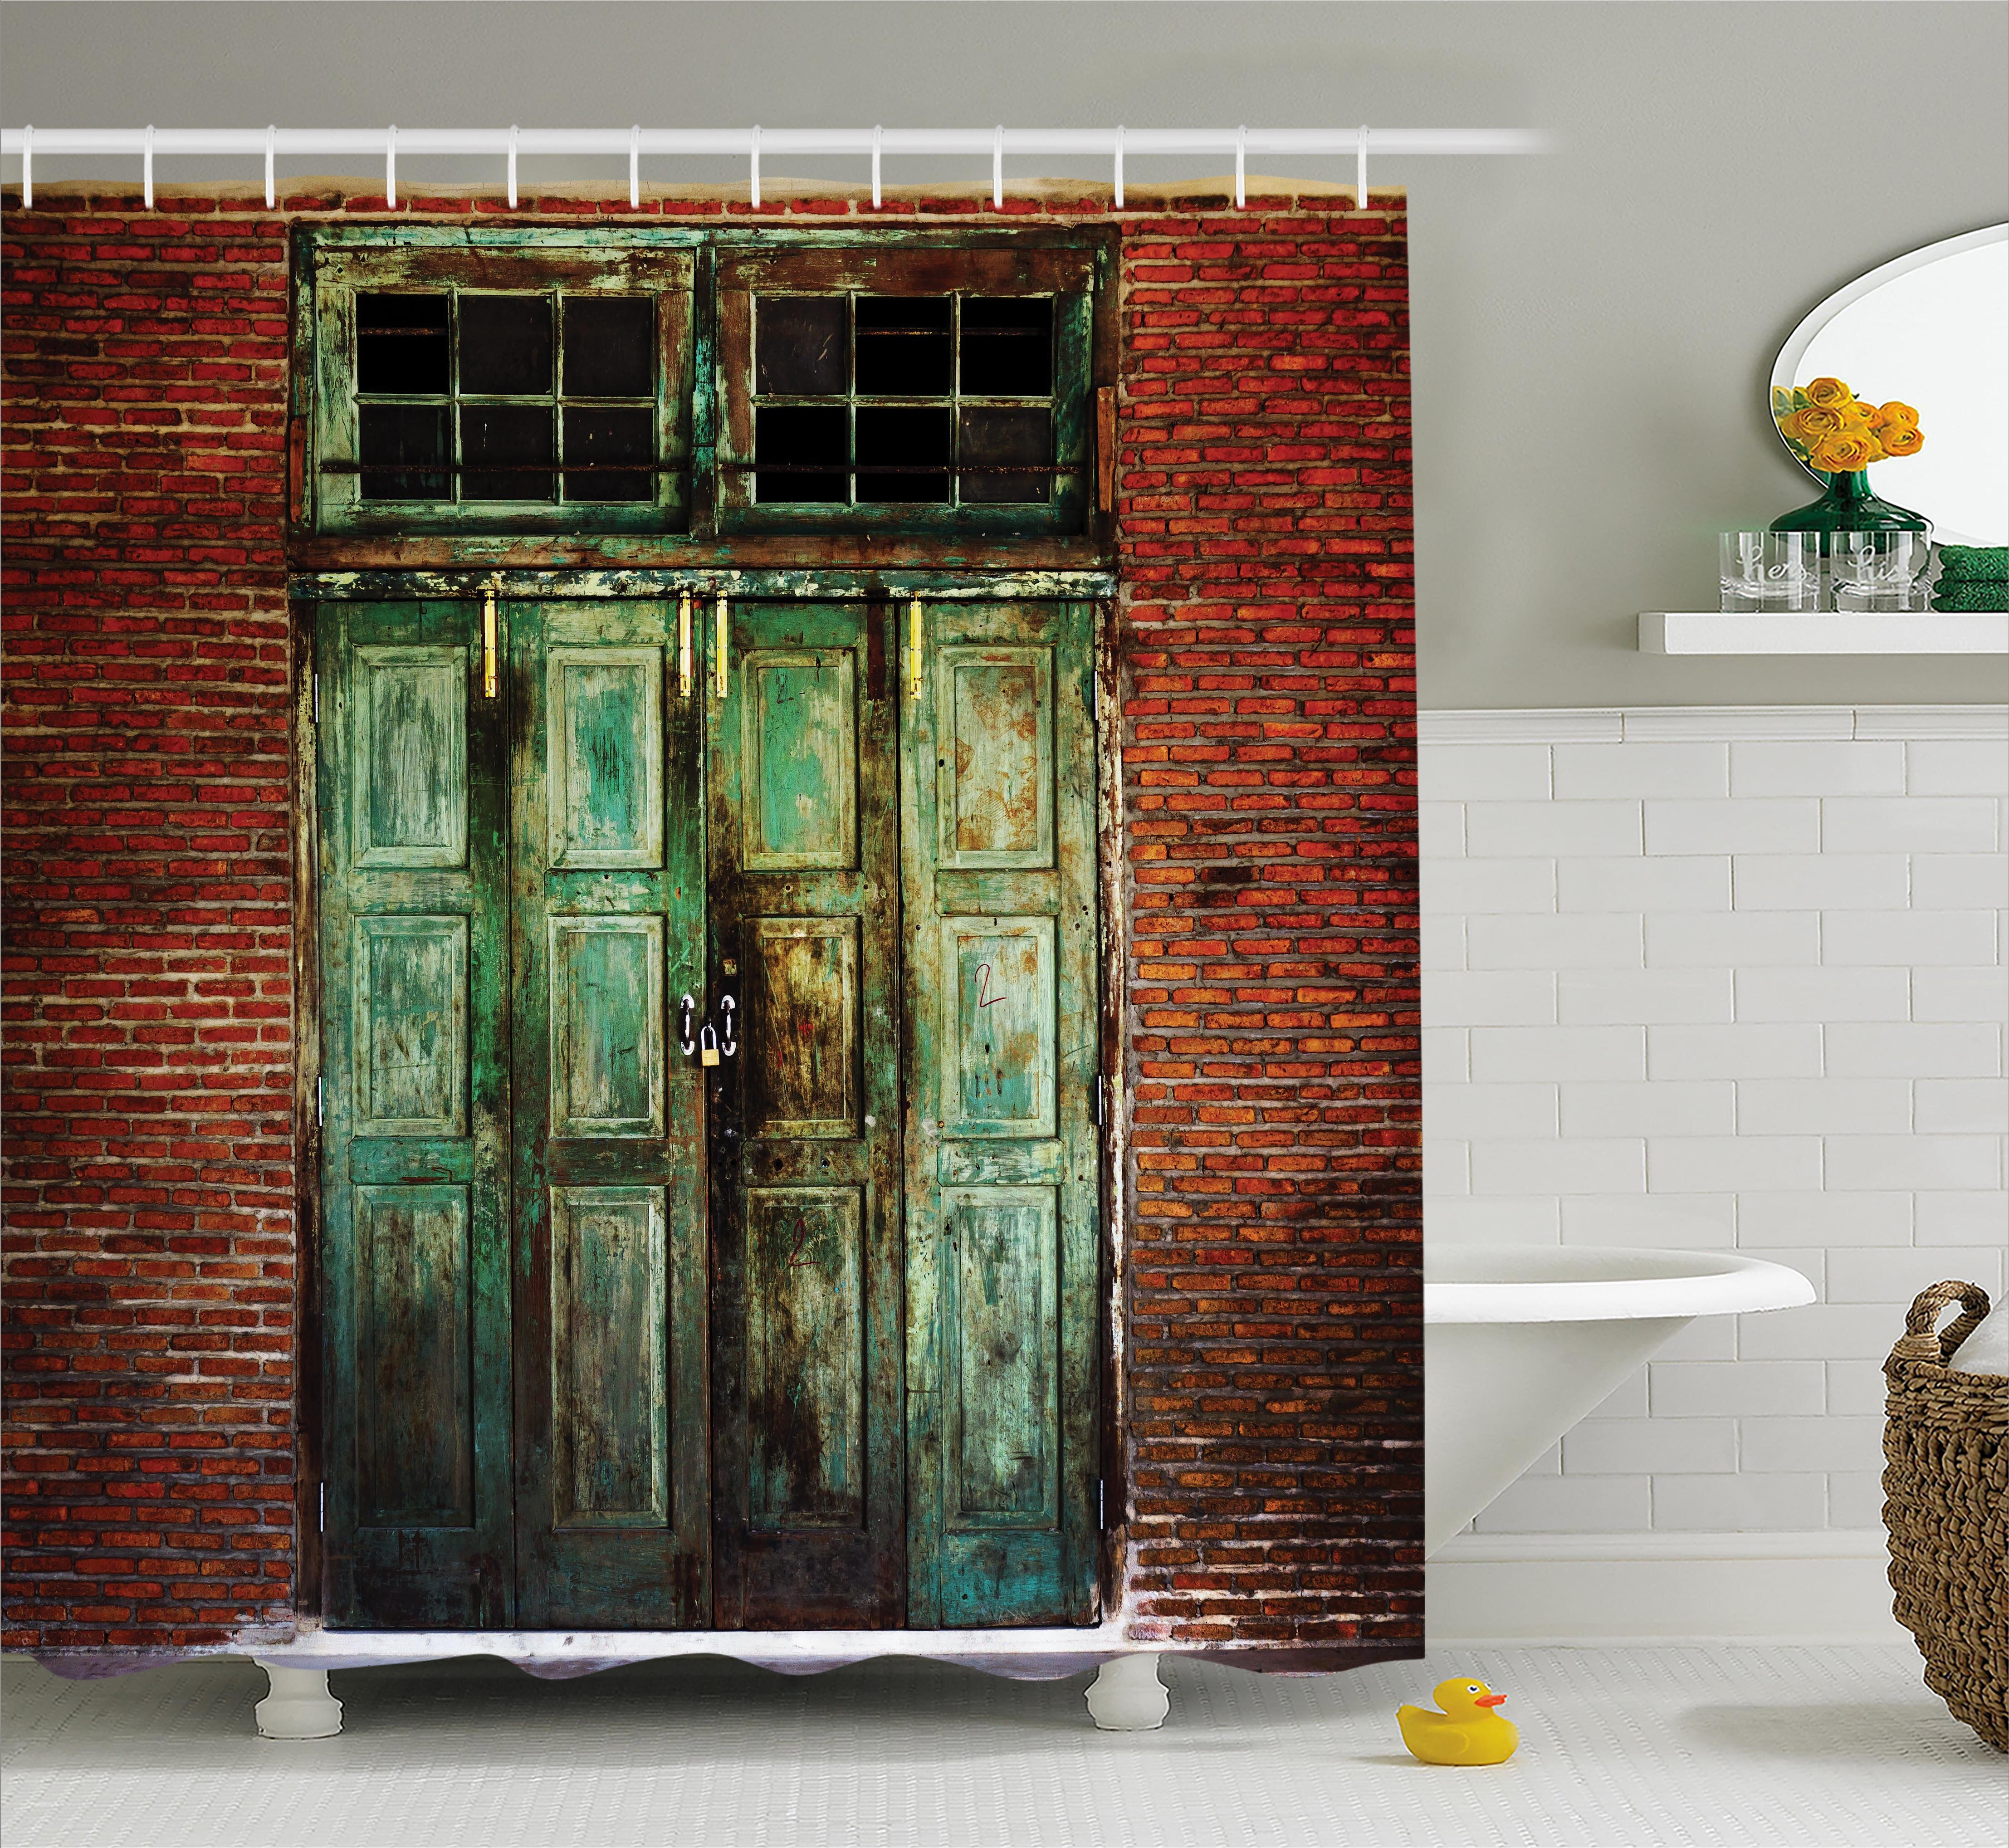 East Urban Home Rustic Rusty Old Retro Door Shower Curtain